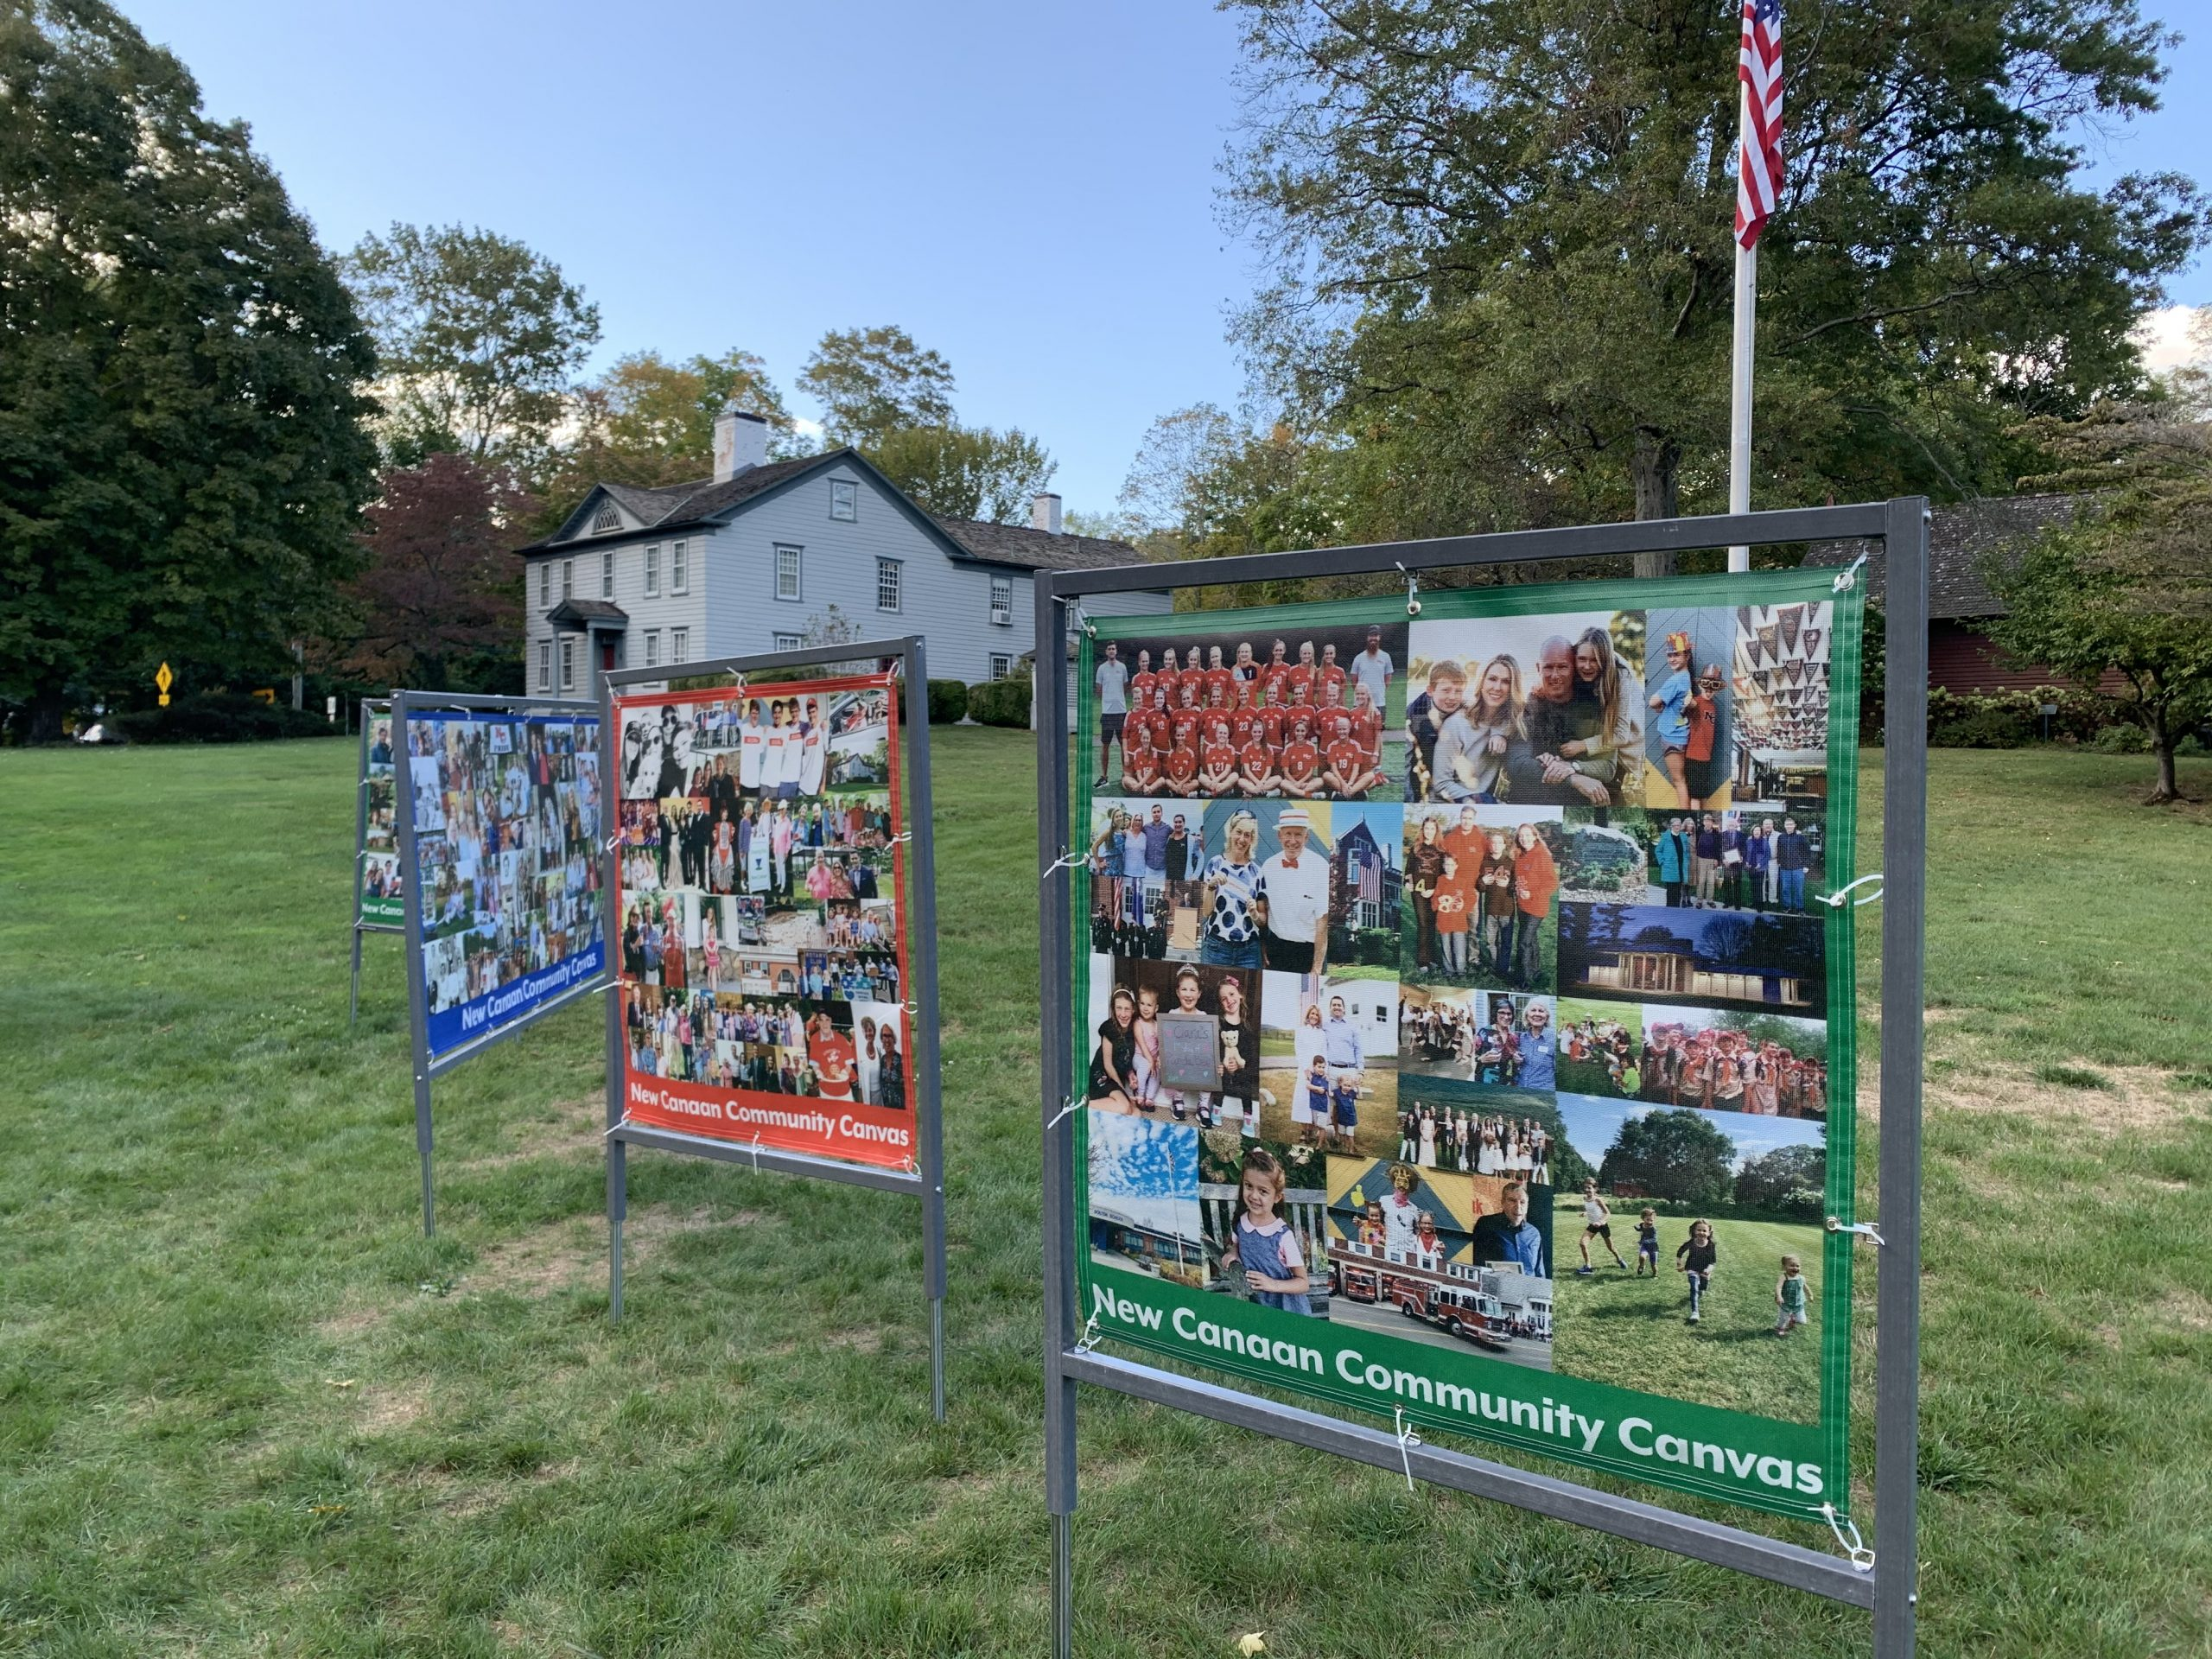 Live New Canaan Community Canvas Historical Society